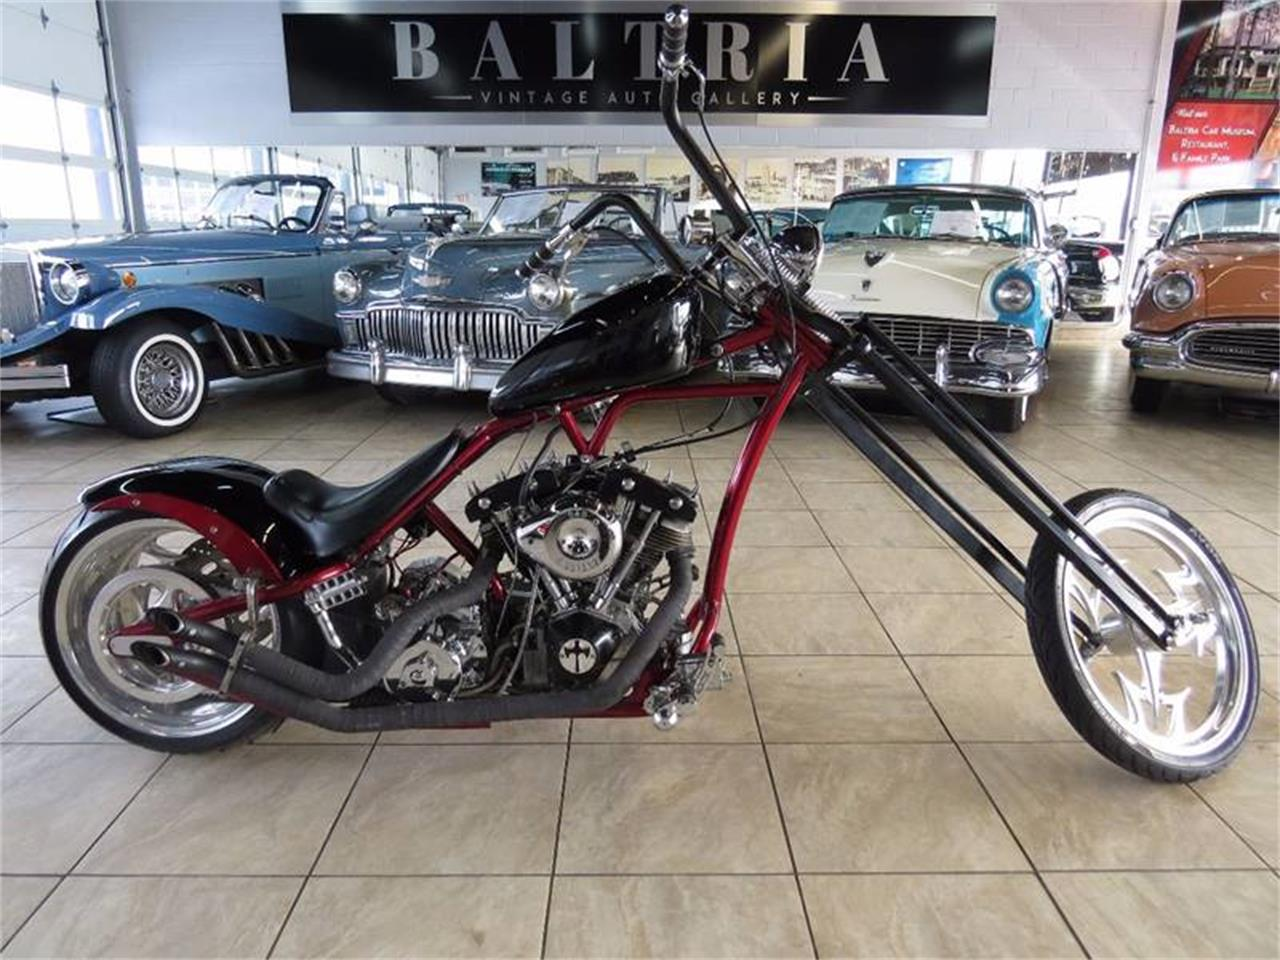 2012 Harley-Davidson Motorcycle for sale in St. Charles, IL